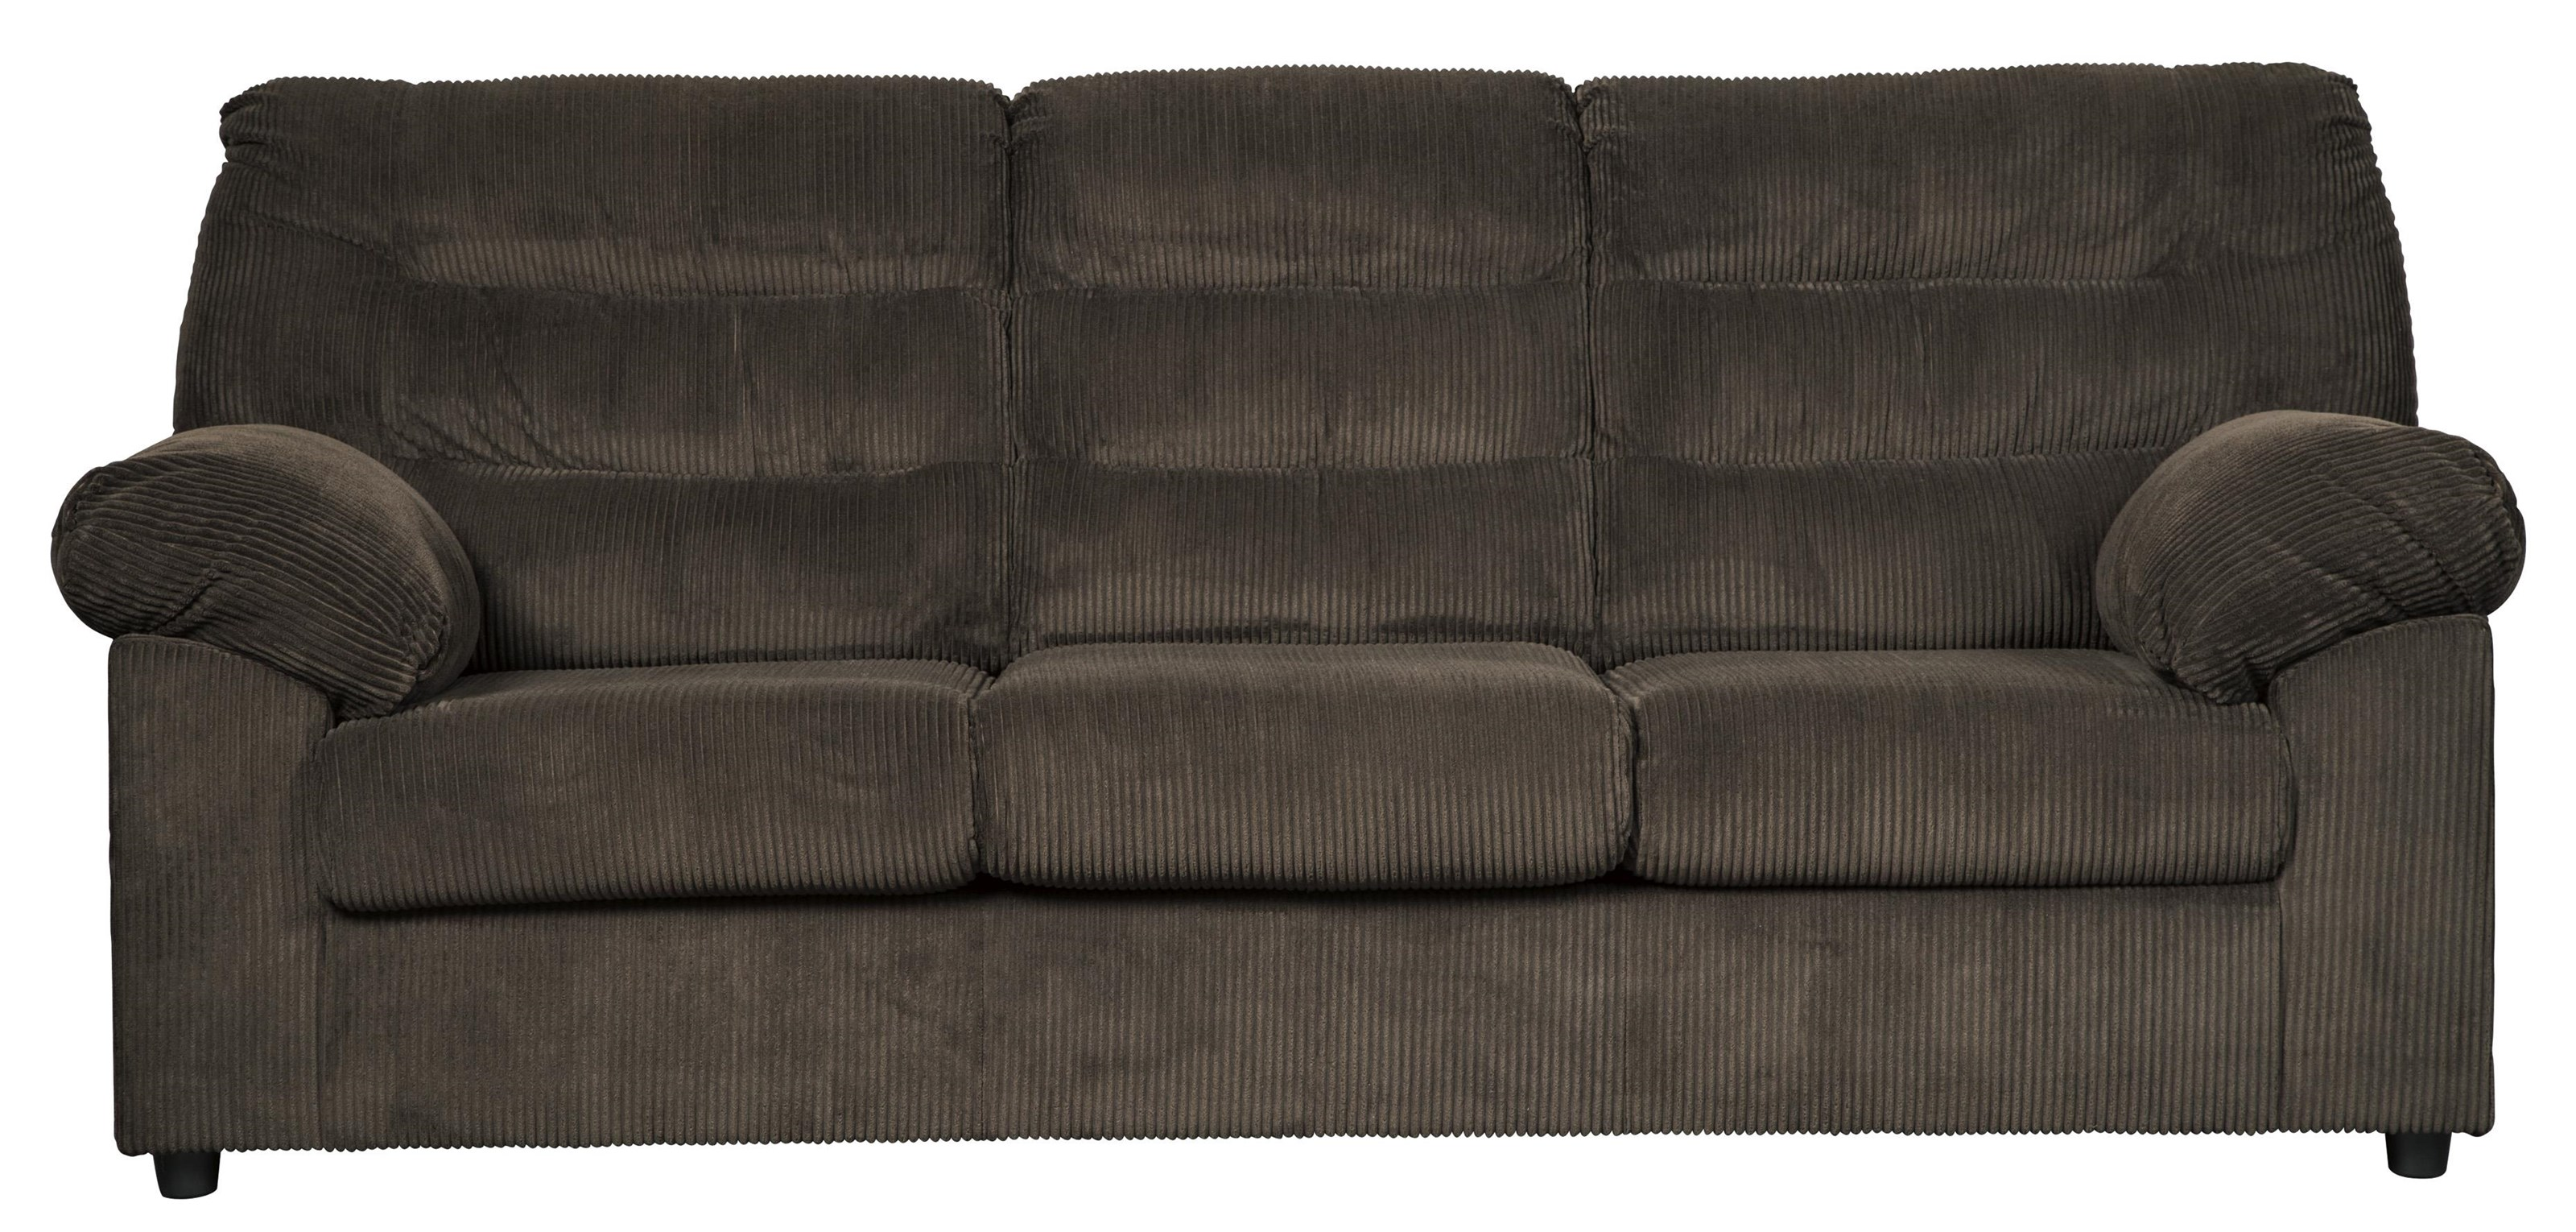 Gosnell Contemporary Sofa by Signature Design by Ashley at Westrich Furniture & Appliances